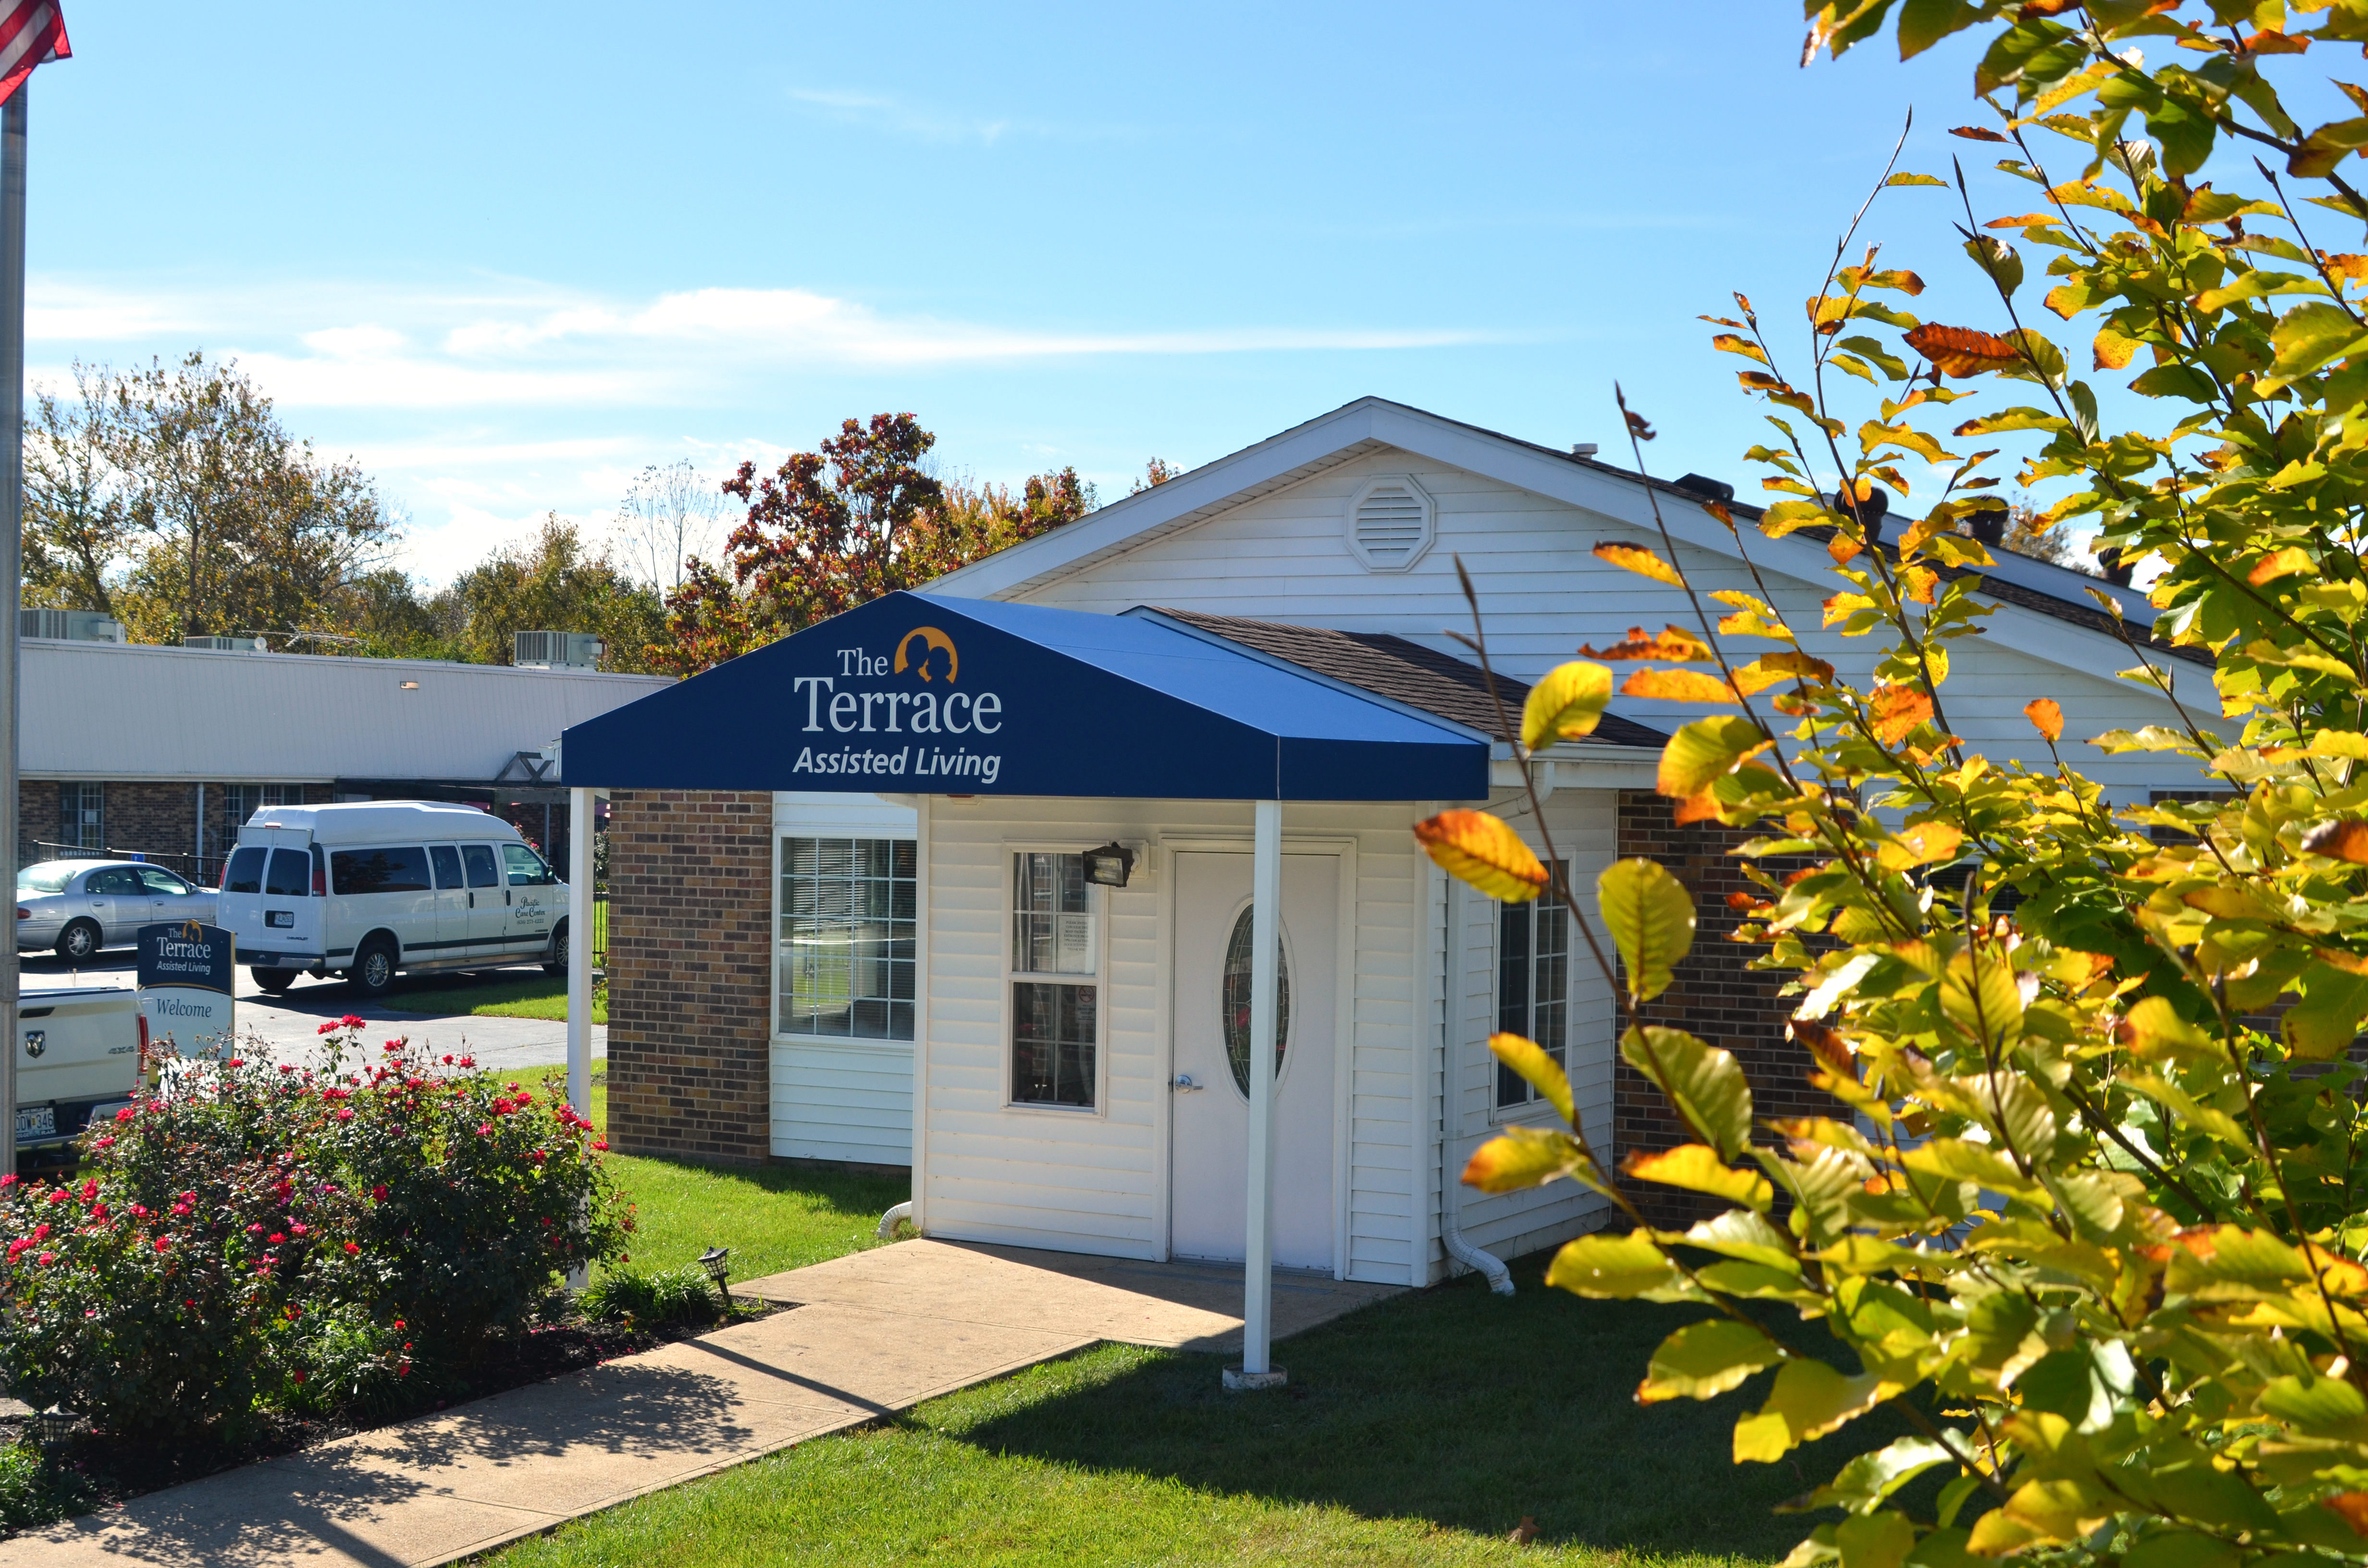 The Terrace Assisted Living Community